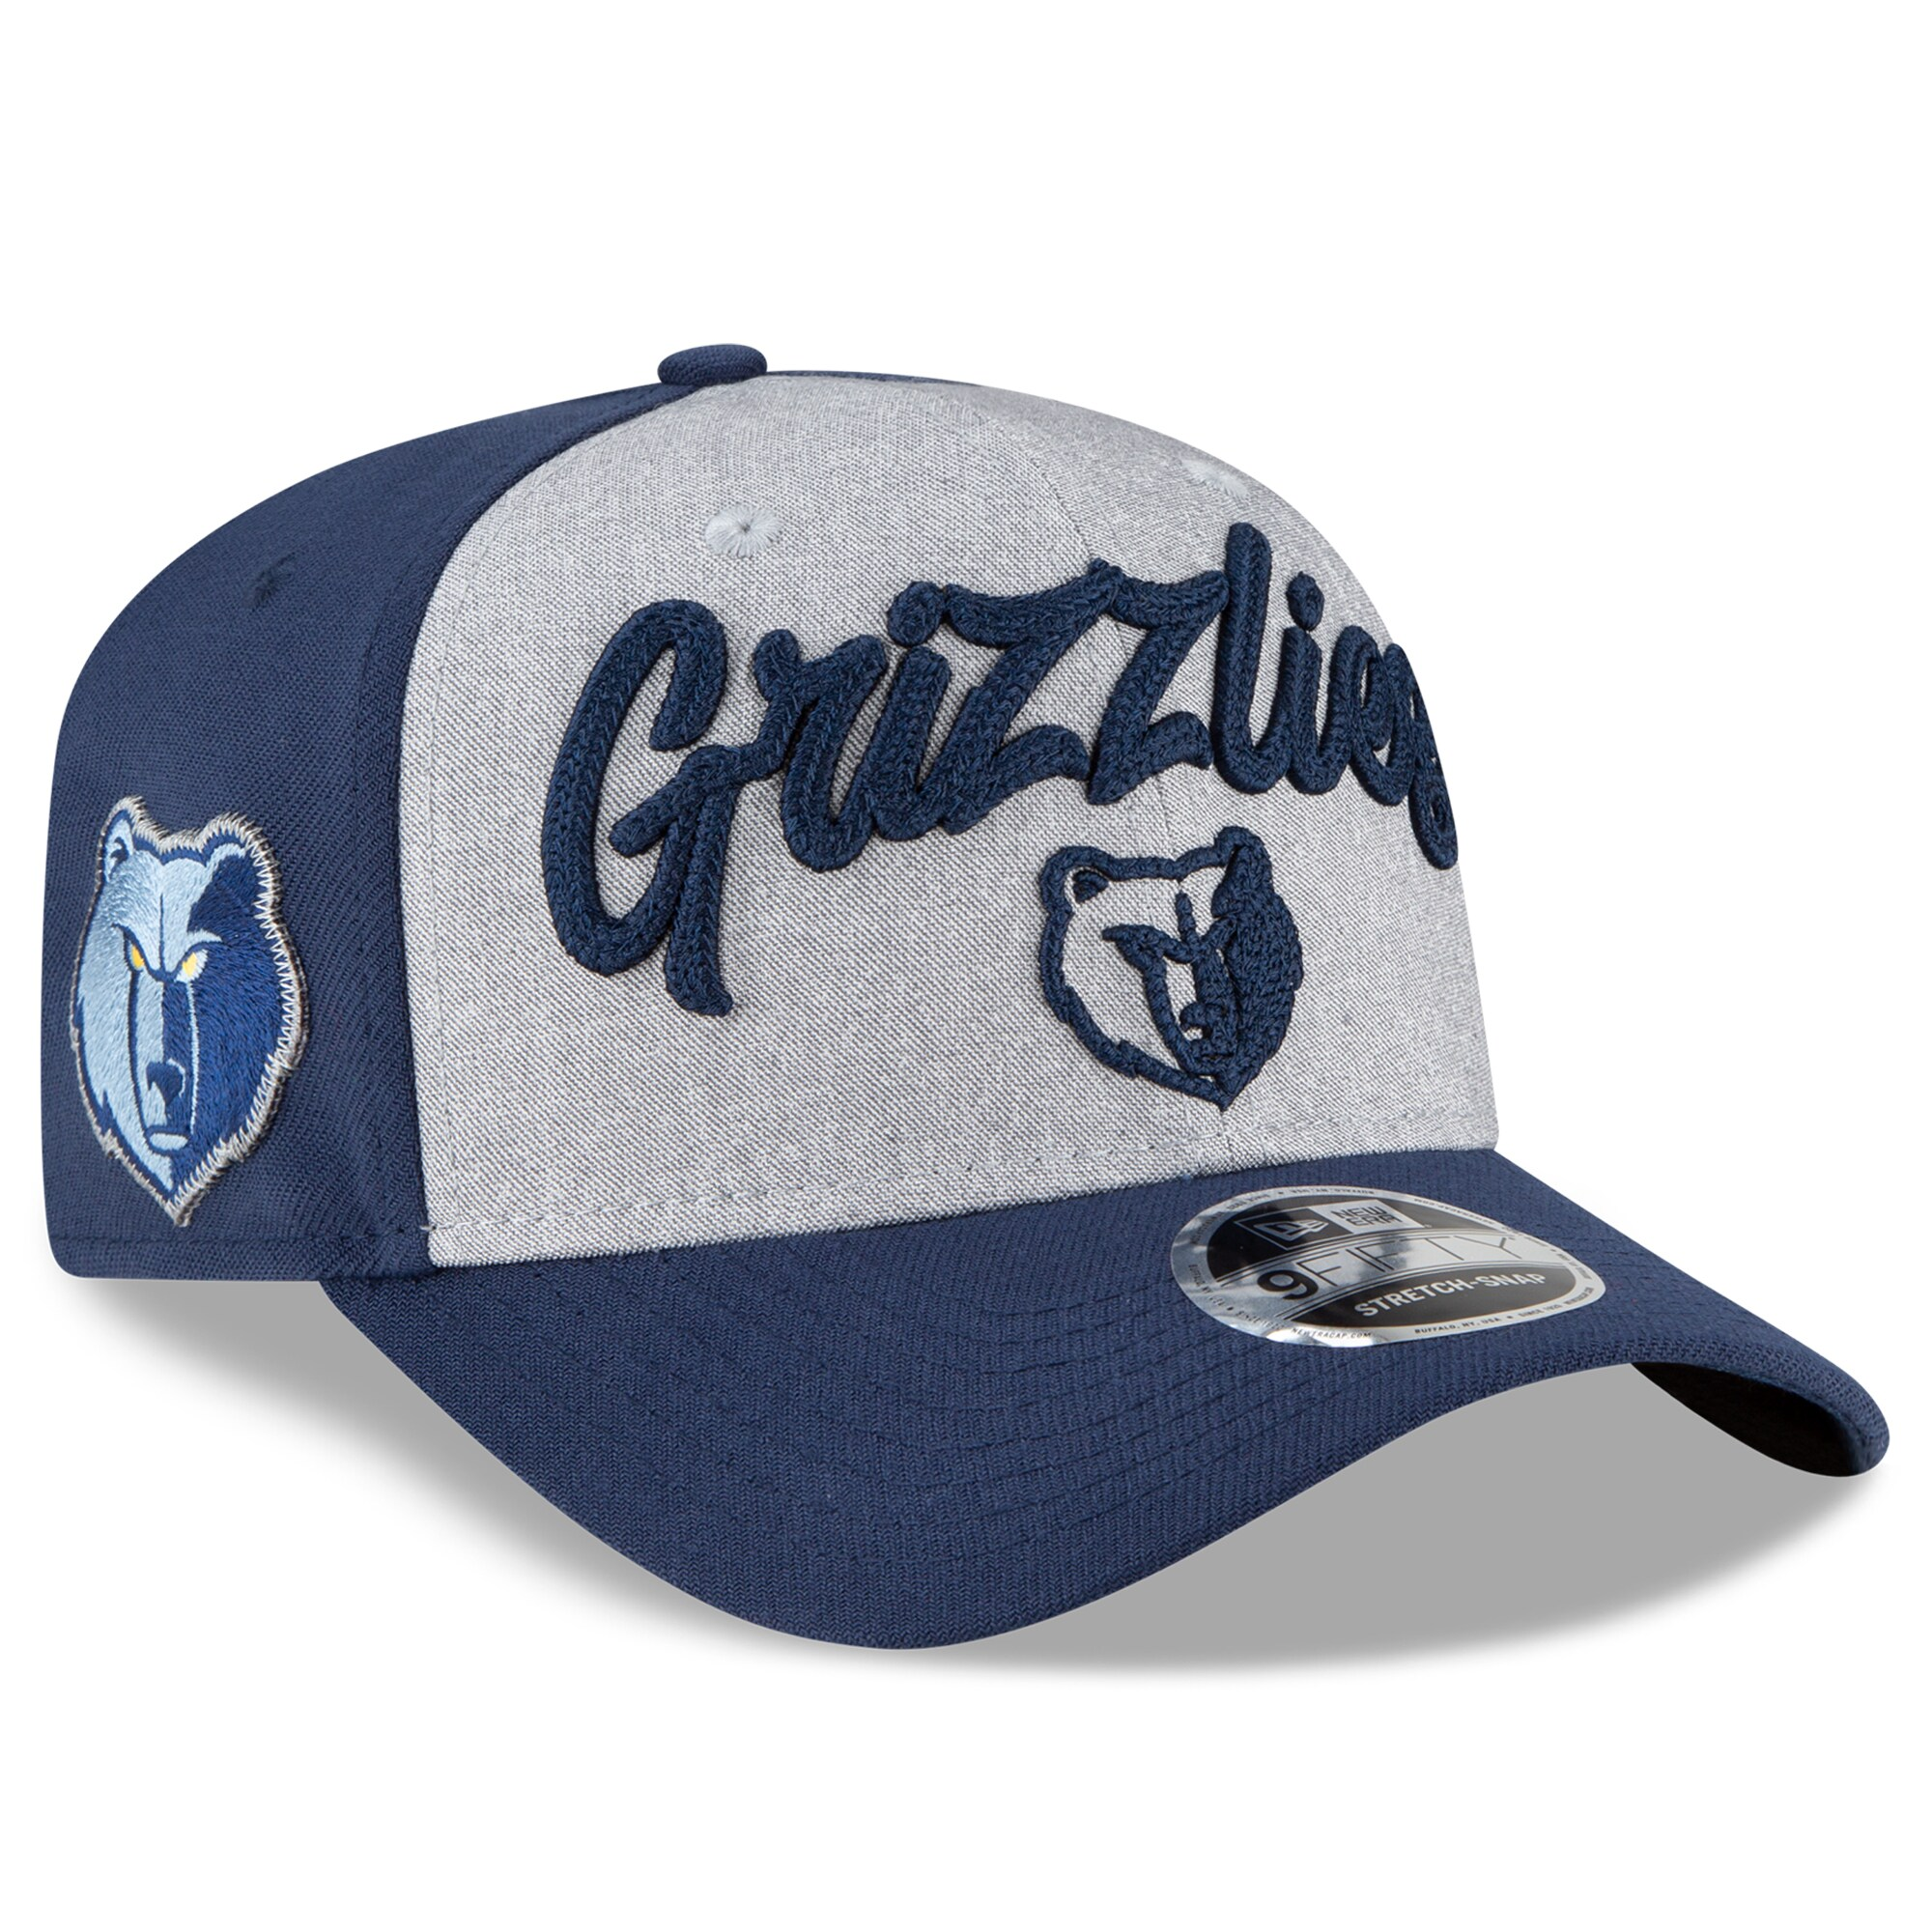 Memphis Grizzlies New Era 2020 NBA Draft OTC 9FIFTY Snapback Adjustable Hat - Heather Gray/Navy